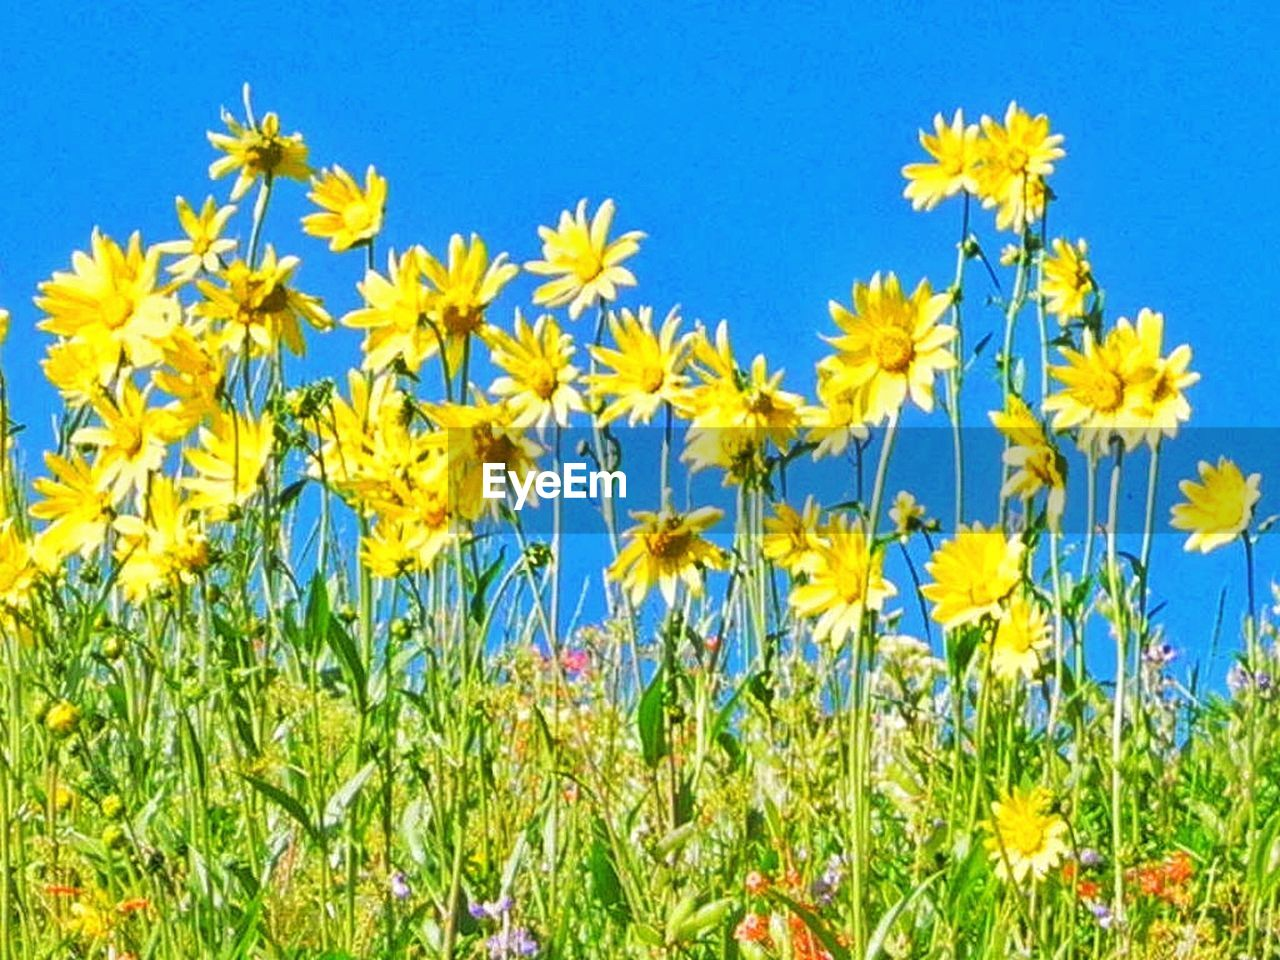 flower, growth, yellow, nature, blue, plant, field, day, beauty in nature, outdoors, no people, springtime, freshness, grass, green color, fragility, clear sky, rural scene, flower head, close-up, sky